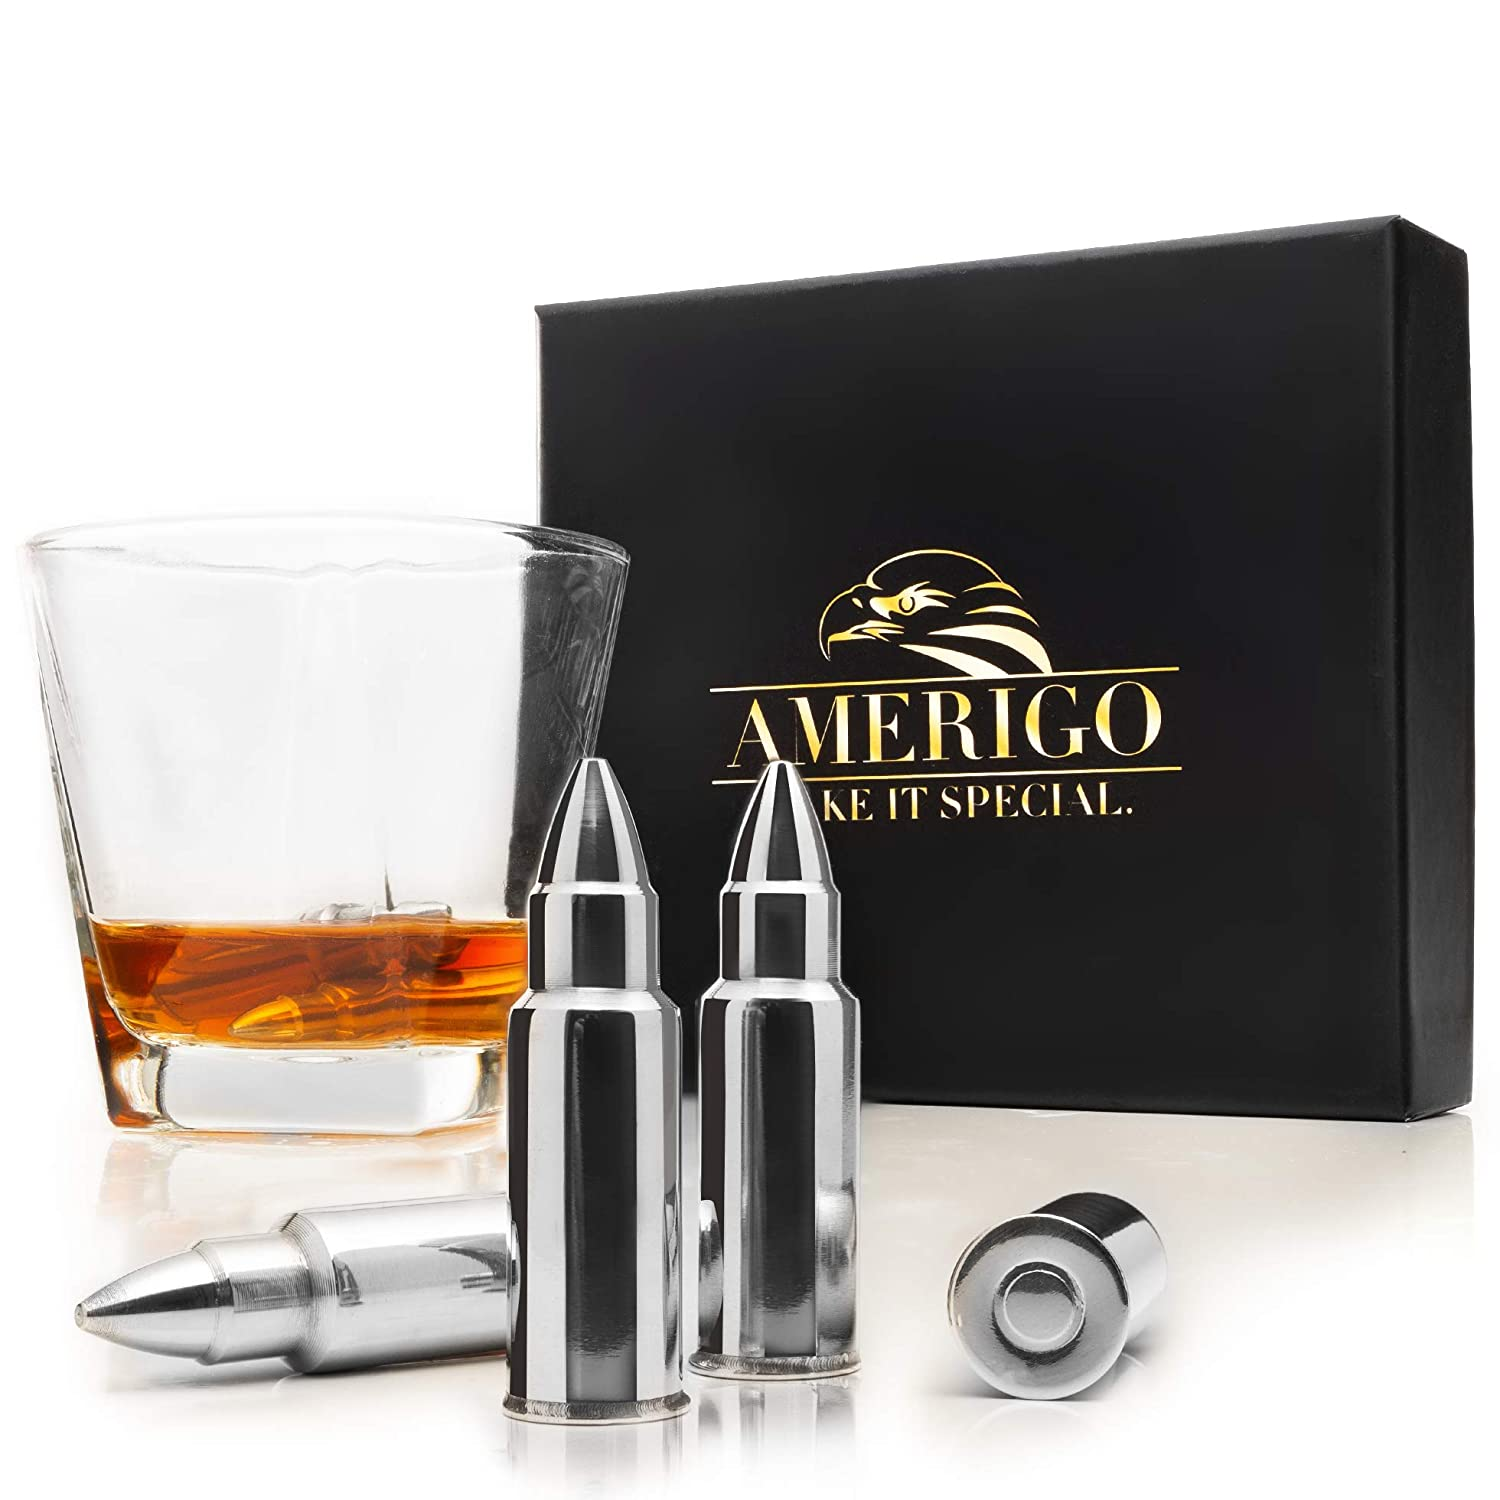 Whiskey Stones Bullets with High Cooling Technology - Stainless Steel Whiskey Bullets - Reusable Ice cubes - Best Gift for Men - Set of 6 Whiskey Ice Cubes + Ice Tongs - Whiskey Stones Gift Set Amerigo